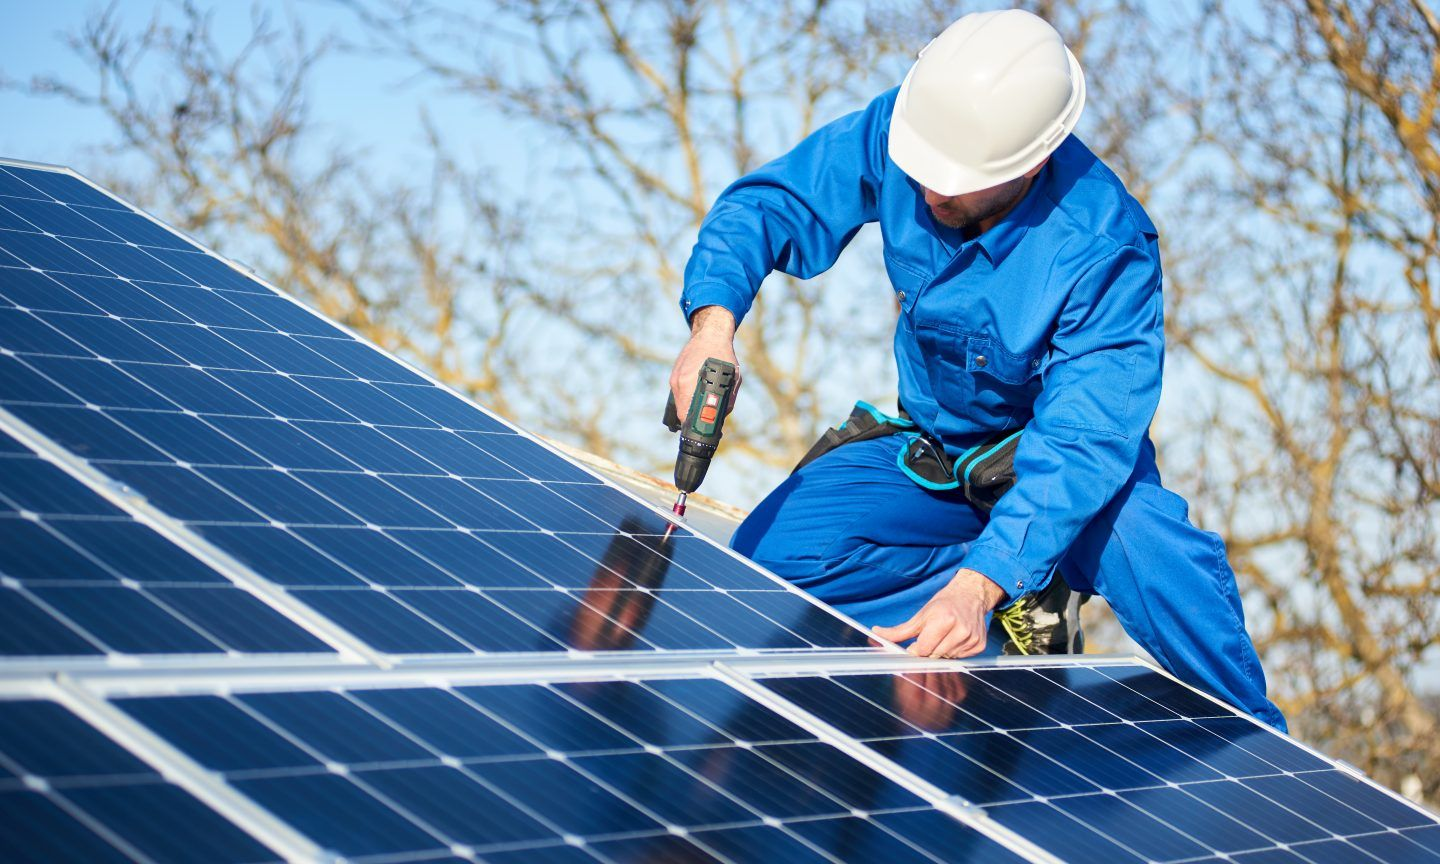 What Do Solar Panels Cost And Are They Worth It Nerdwallet In 2020 Solar Solar Installation Green Business Ideas